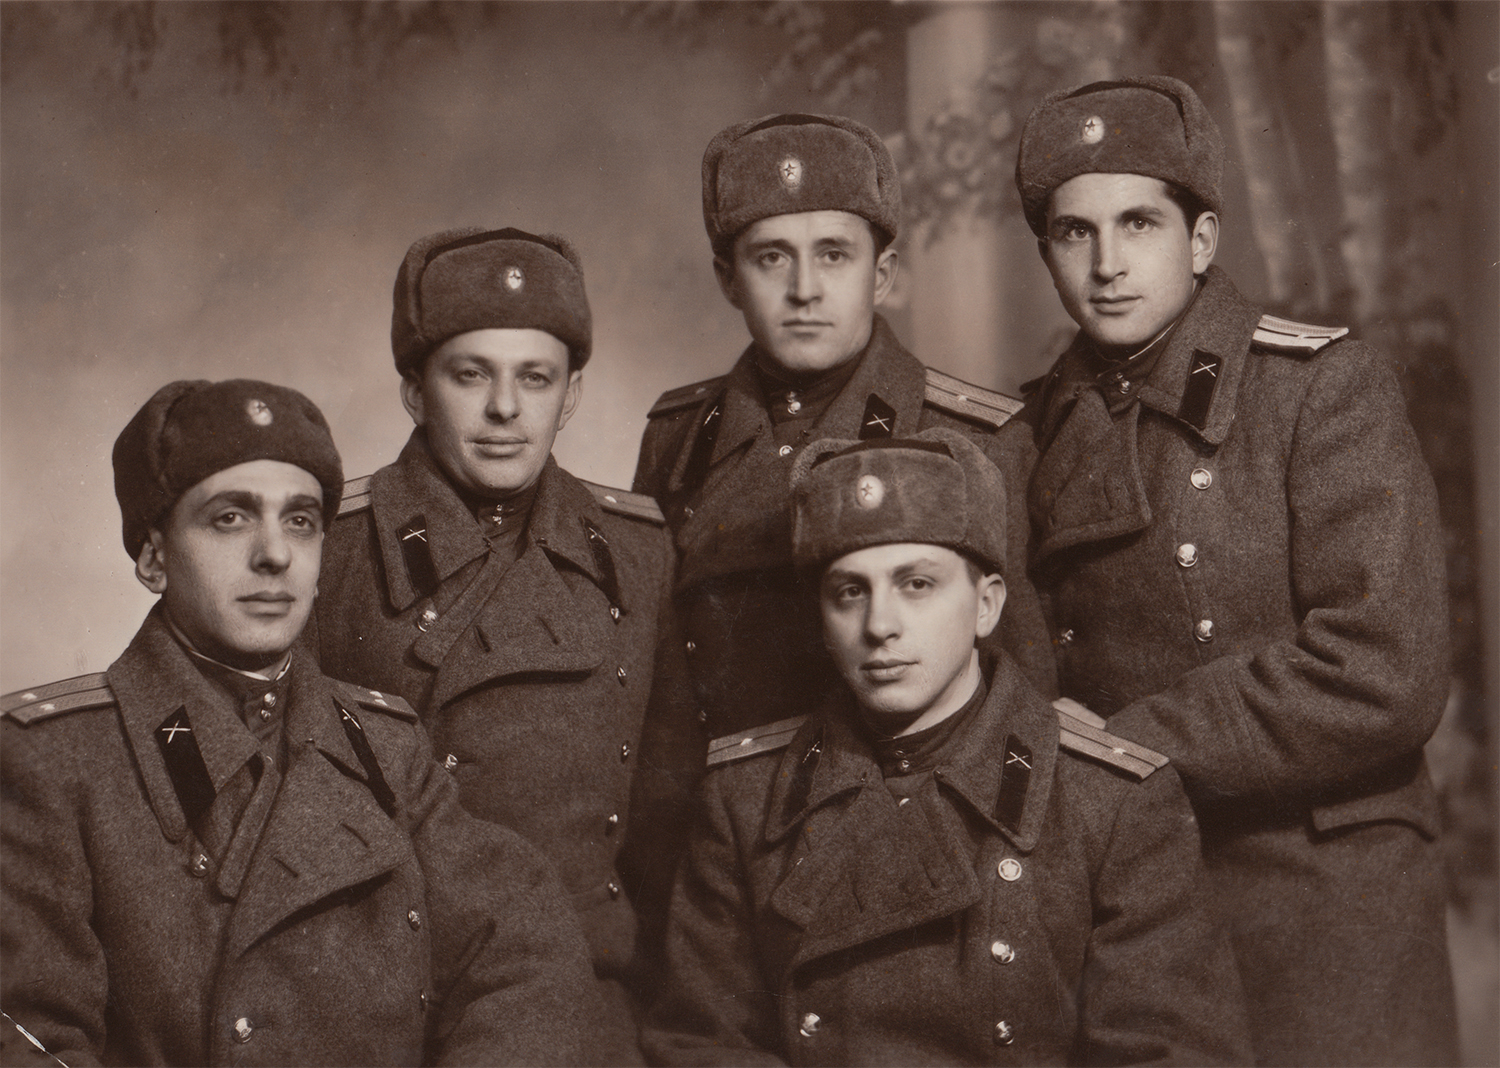 Gennady Shikhelman (far left) with a group of fellow soldiers from Odesa's 4th Company, 1958